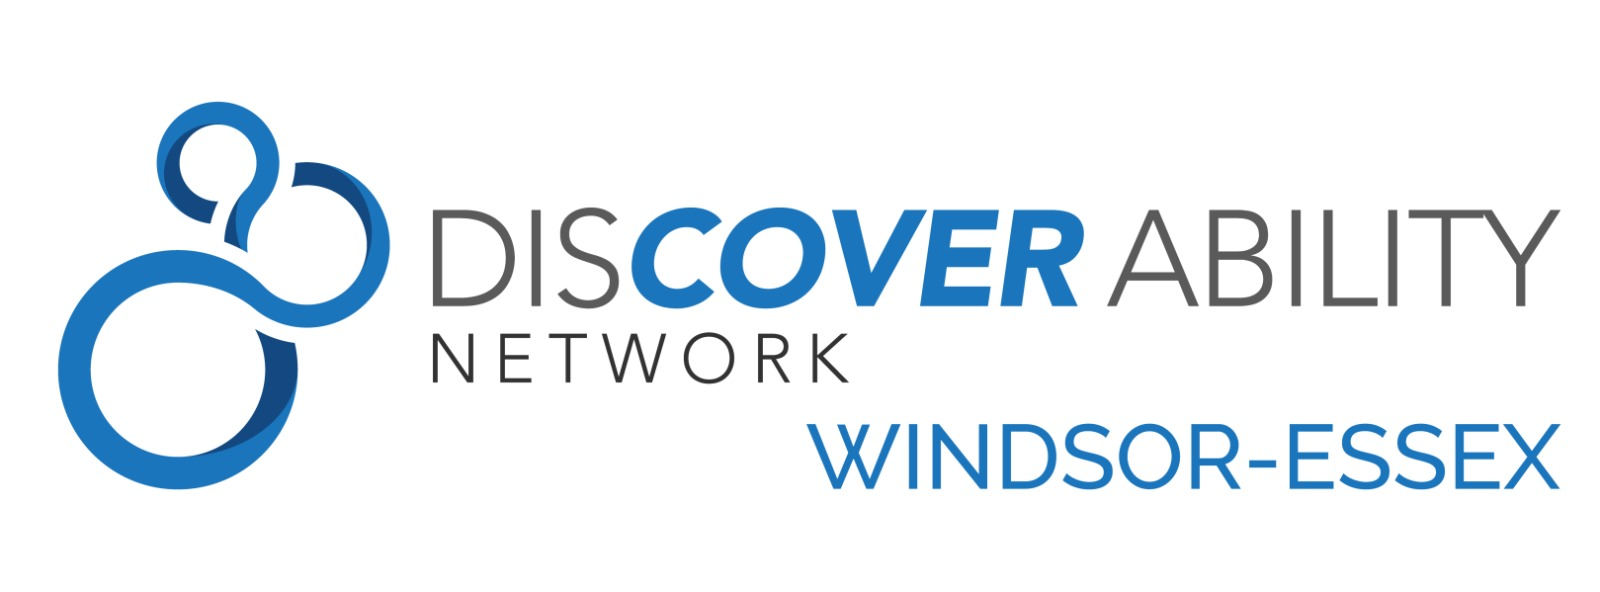 Discover Ability Windsor